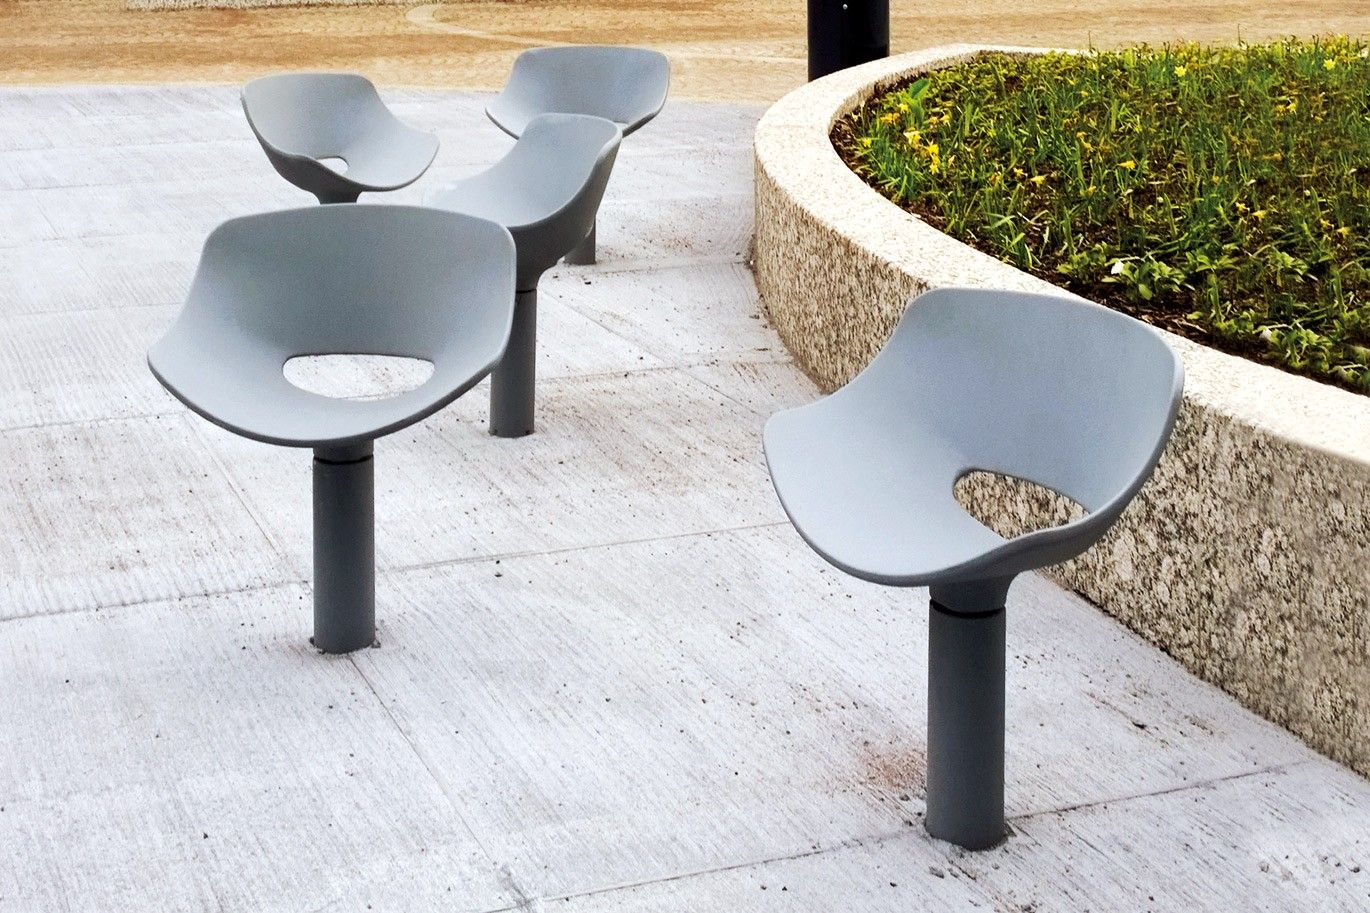 Chairs Tables Sol Escofet 1886 S A Chair Chair Design Concrete Table